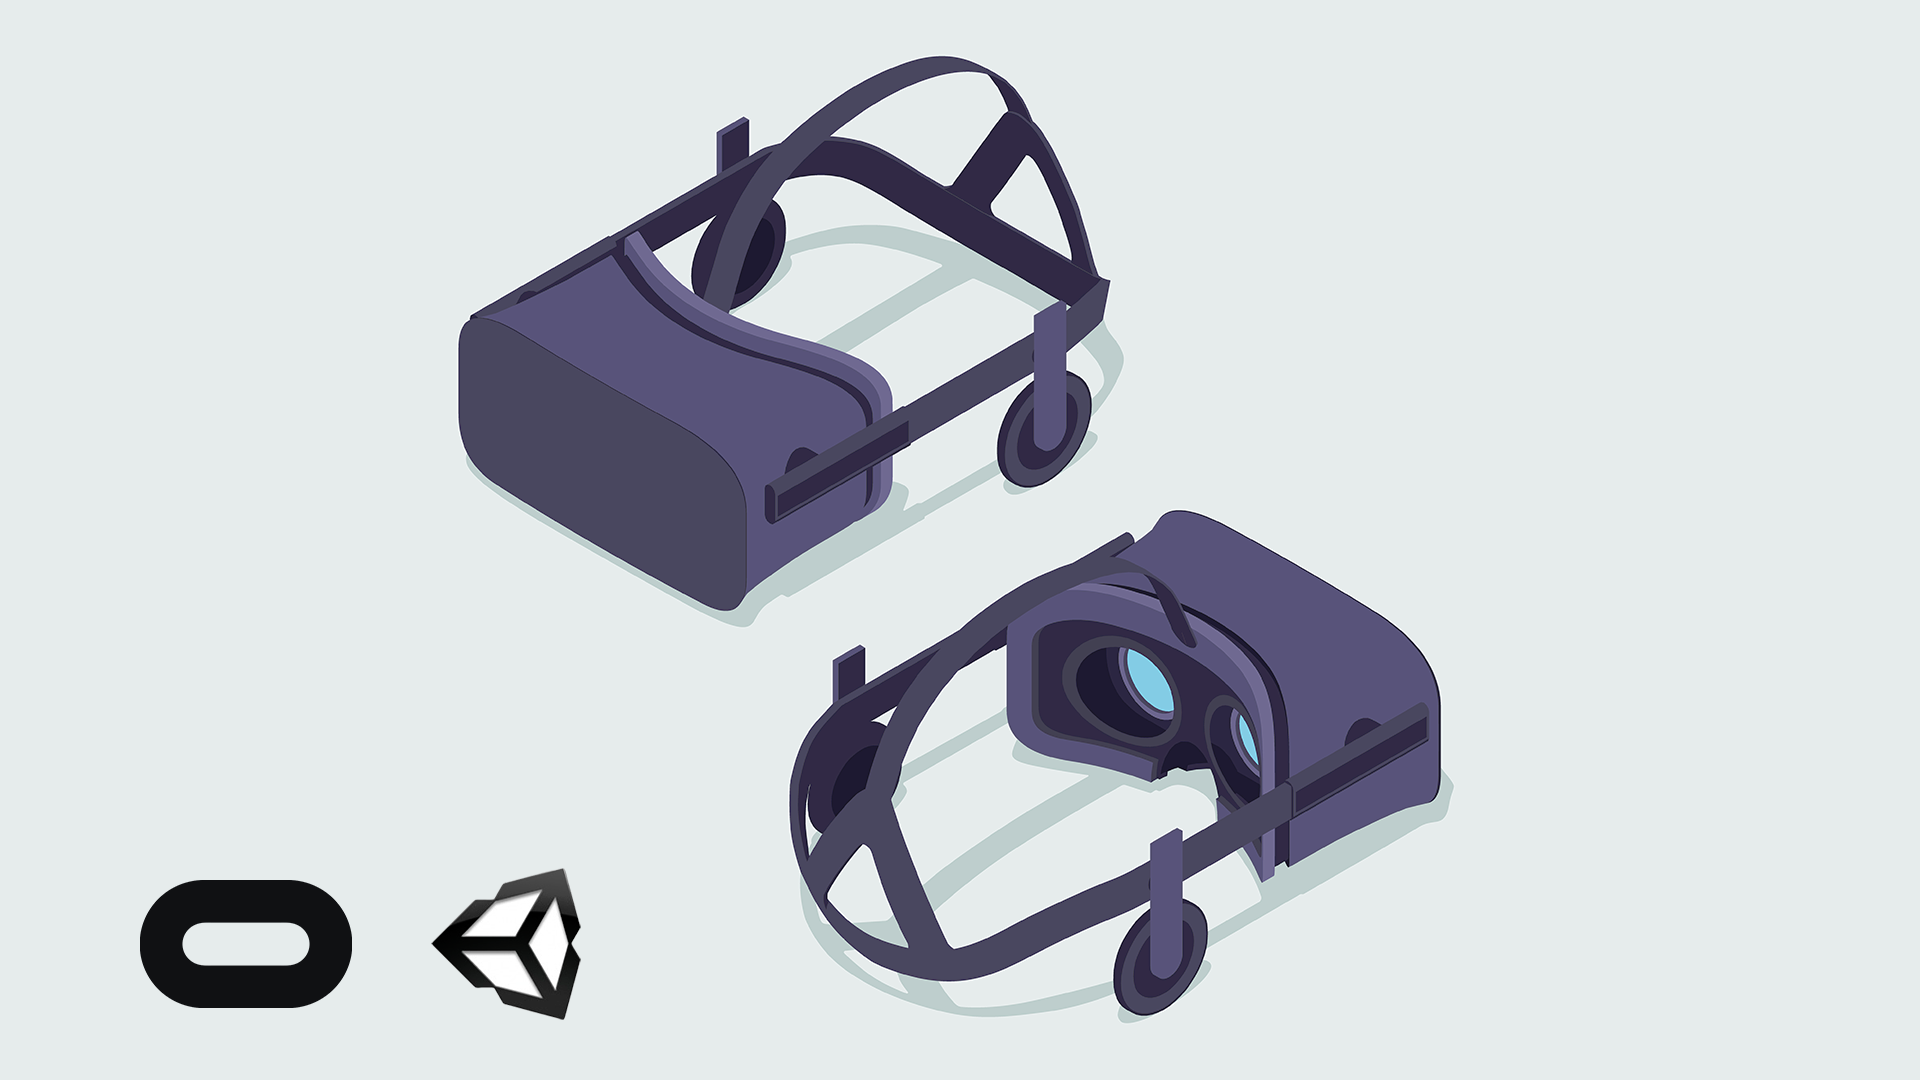 Oculus Rift Developer Mini Course